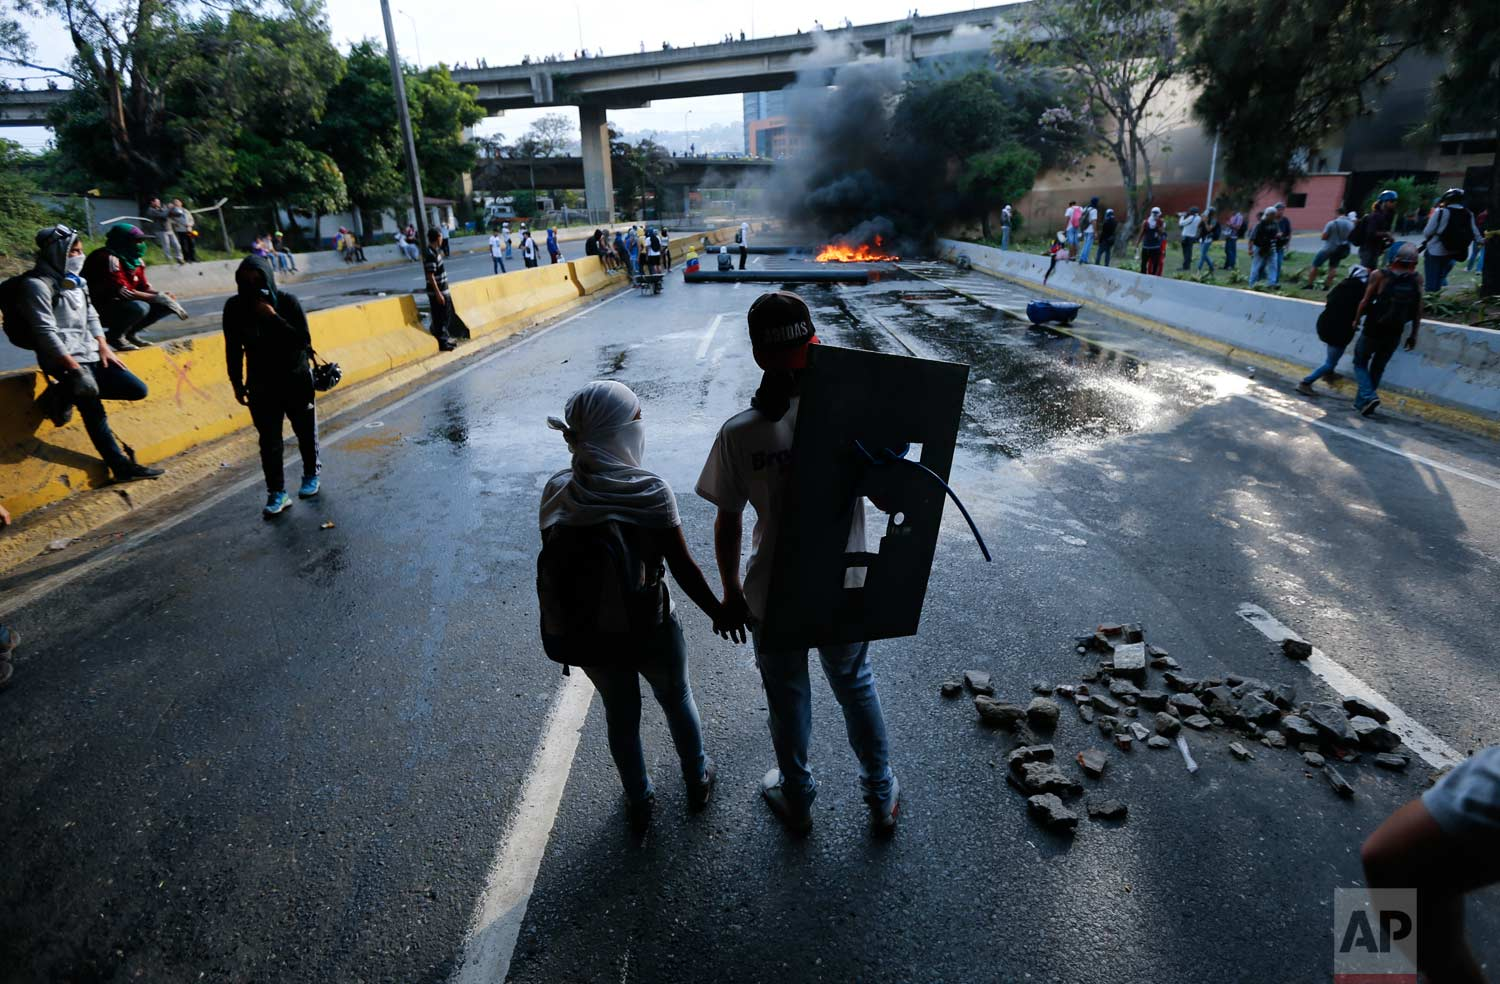 A couple holds hands at a road block set by anti-government protesters in Caracas, Venezuela. Protesters shut down the capital city's main highway to express their disgust with the administration of President Nicolas Maduro. (AP Photo/Ariana Cubillos)